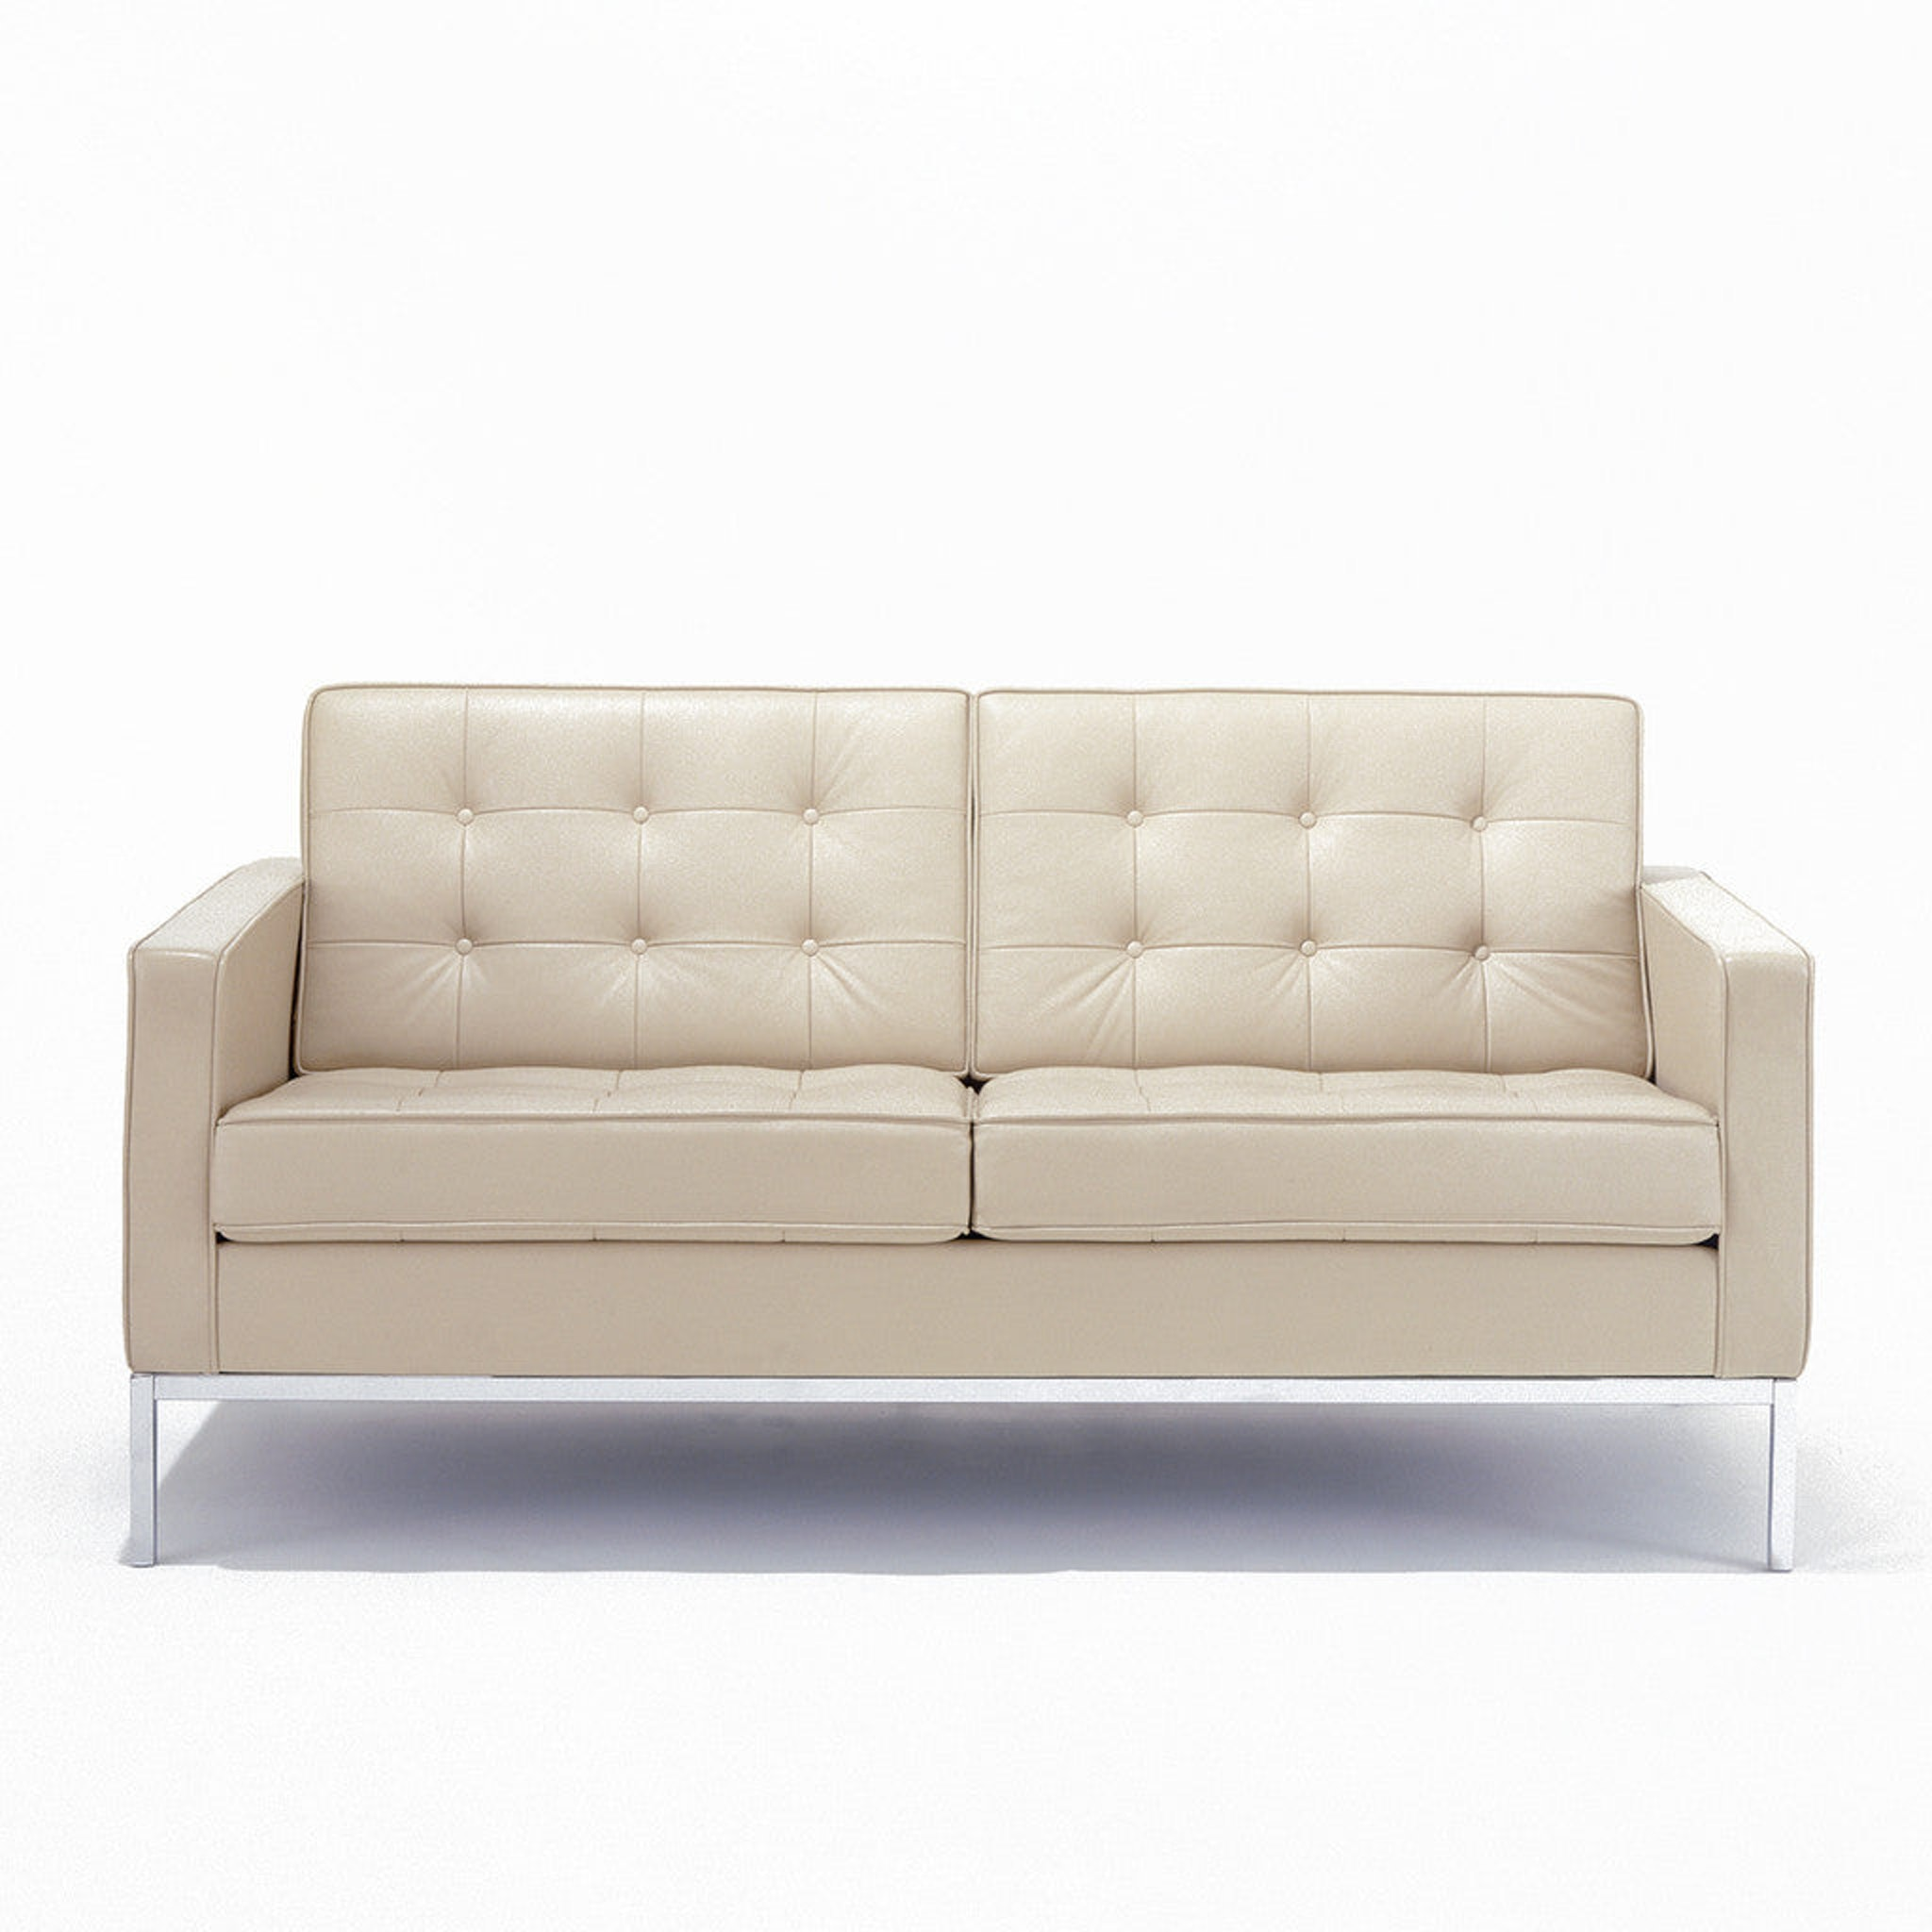 Sofa by Florence Knoll